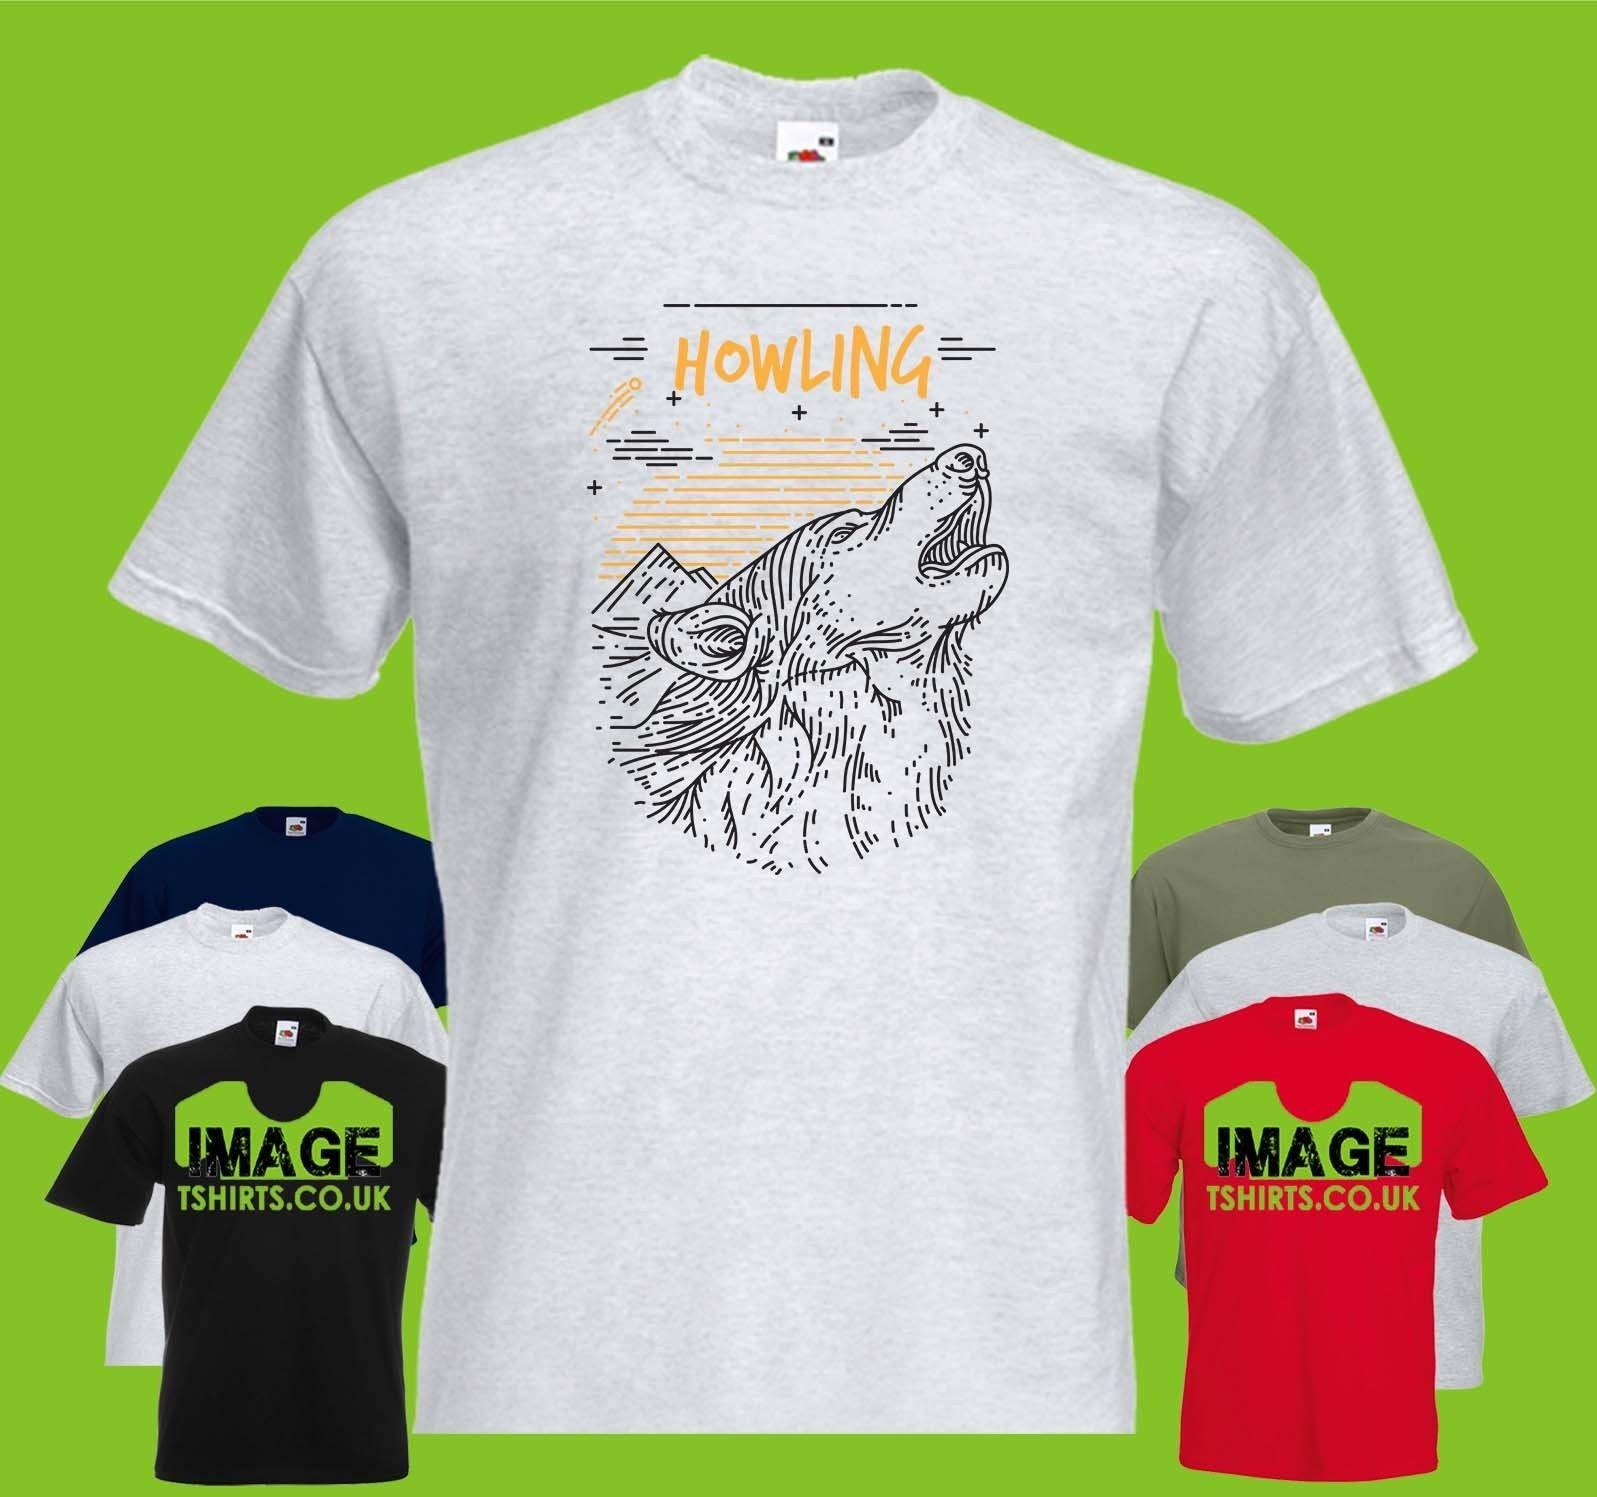 4b19046812d Howling Wolf Mens PRINTED T SHIRT Animal Landscape Mountains Text Woods  Forest Cool Casual Pride T Shirt Men Unisex New Fashion Weird T Shirts T Shirt  Shop ...